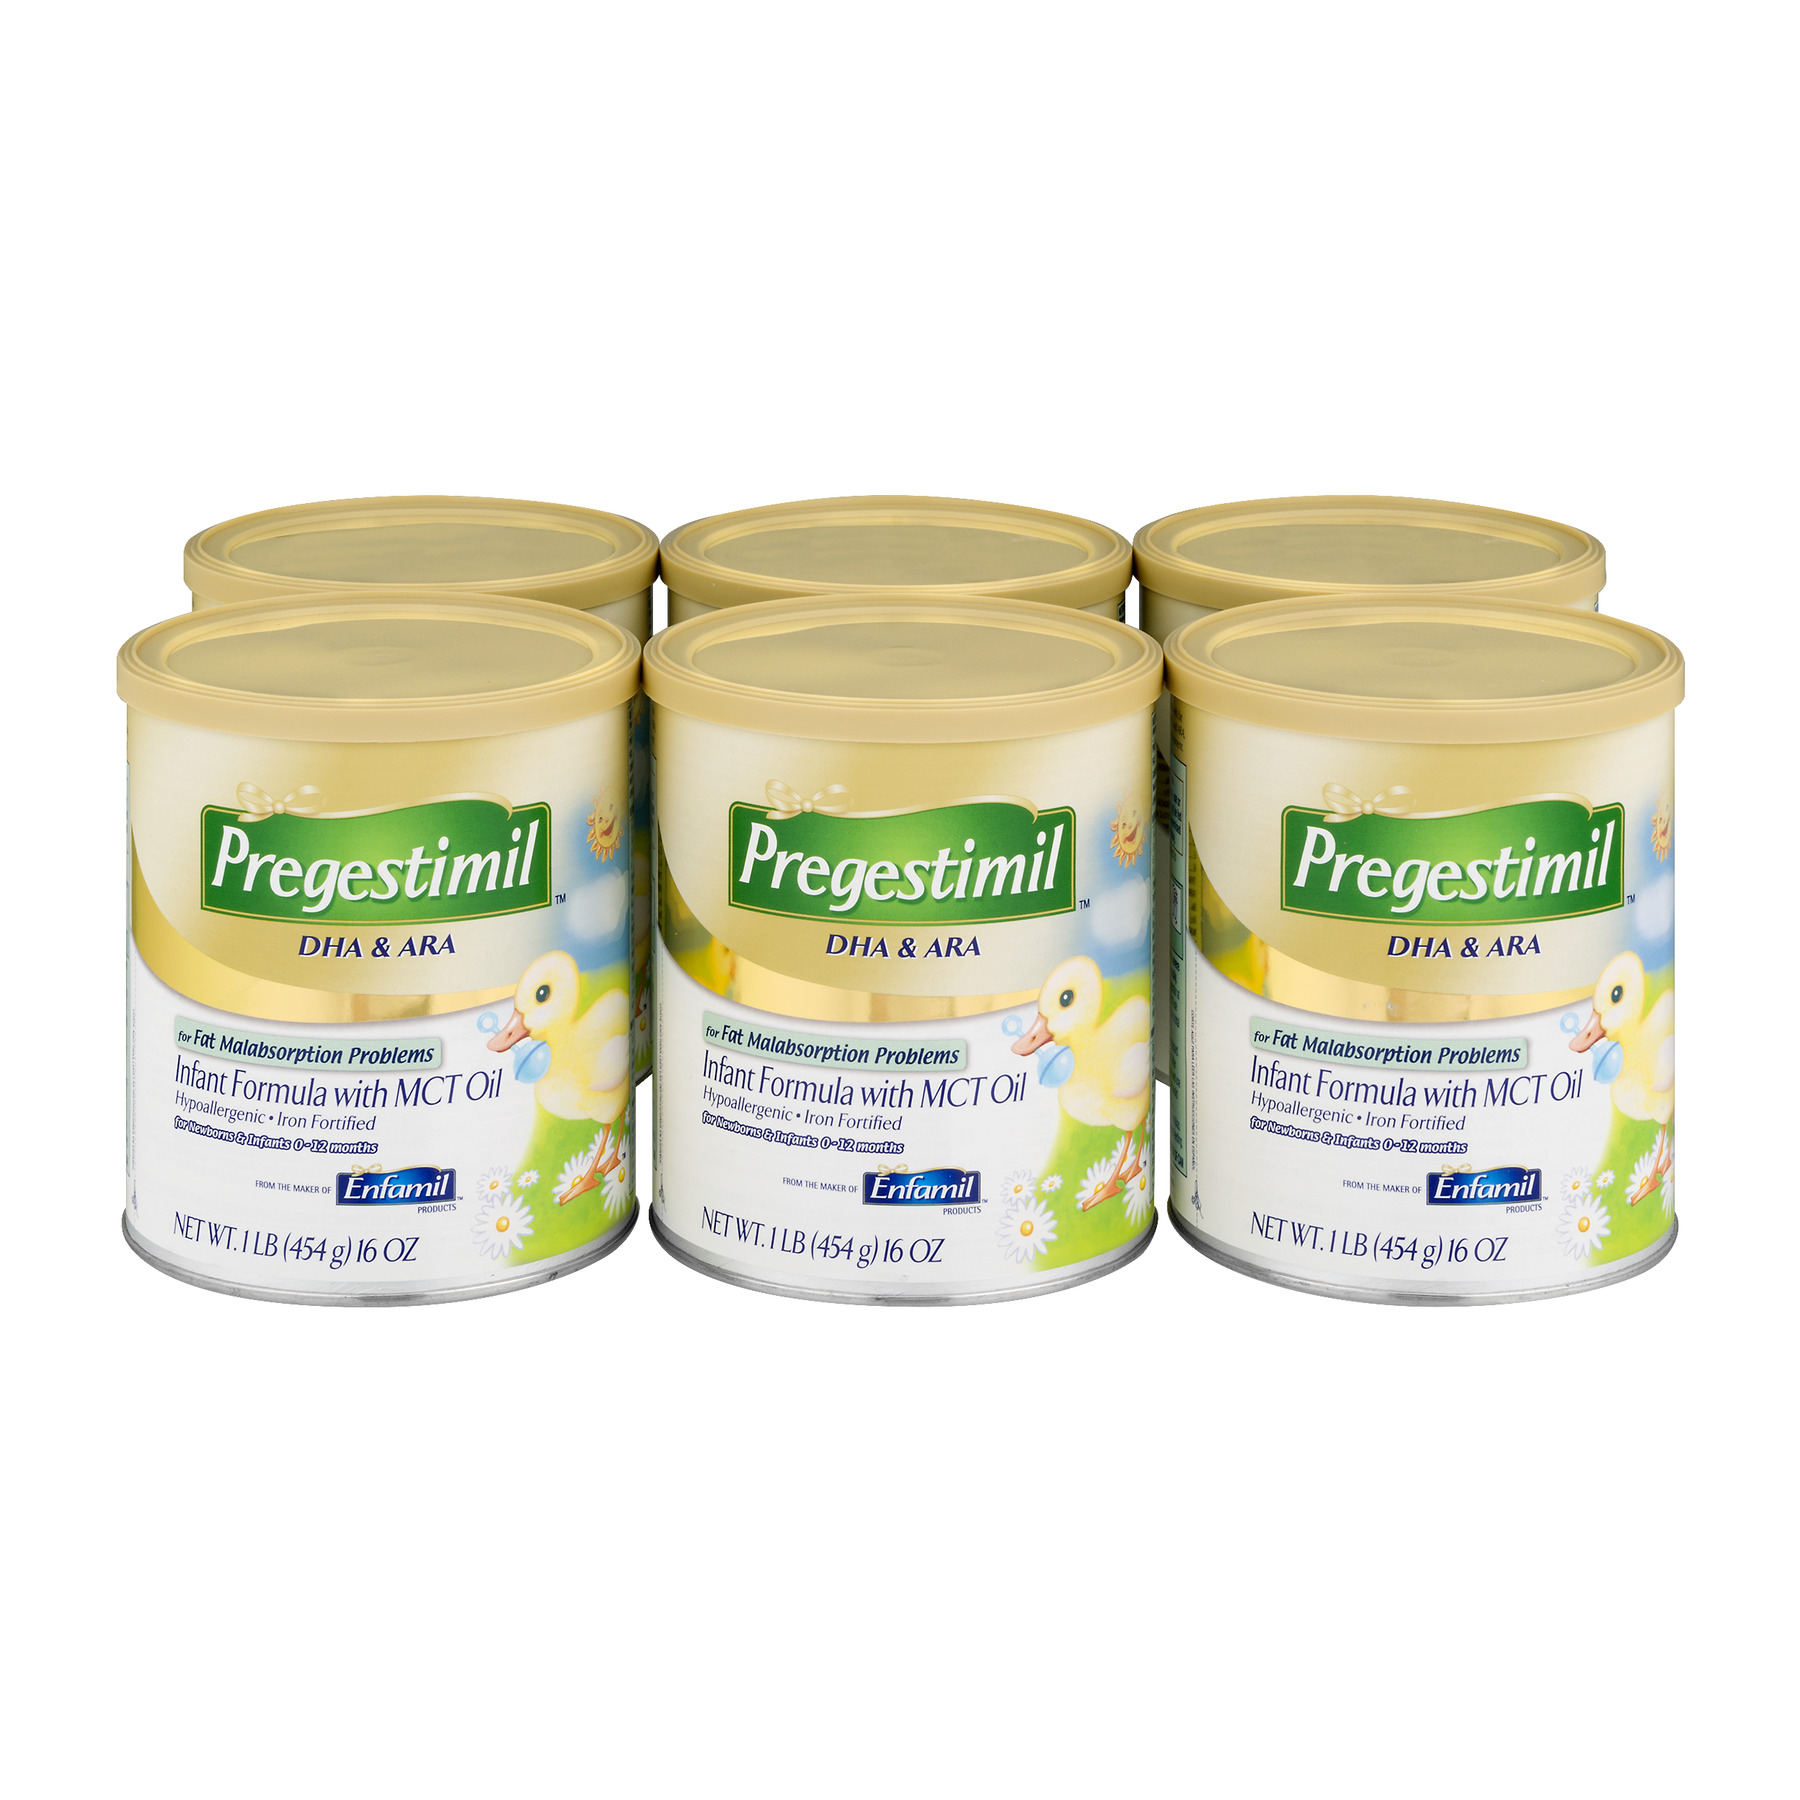 Pregestimil DHA & ARA Infant Formula 6 CT by Enfamil